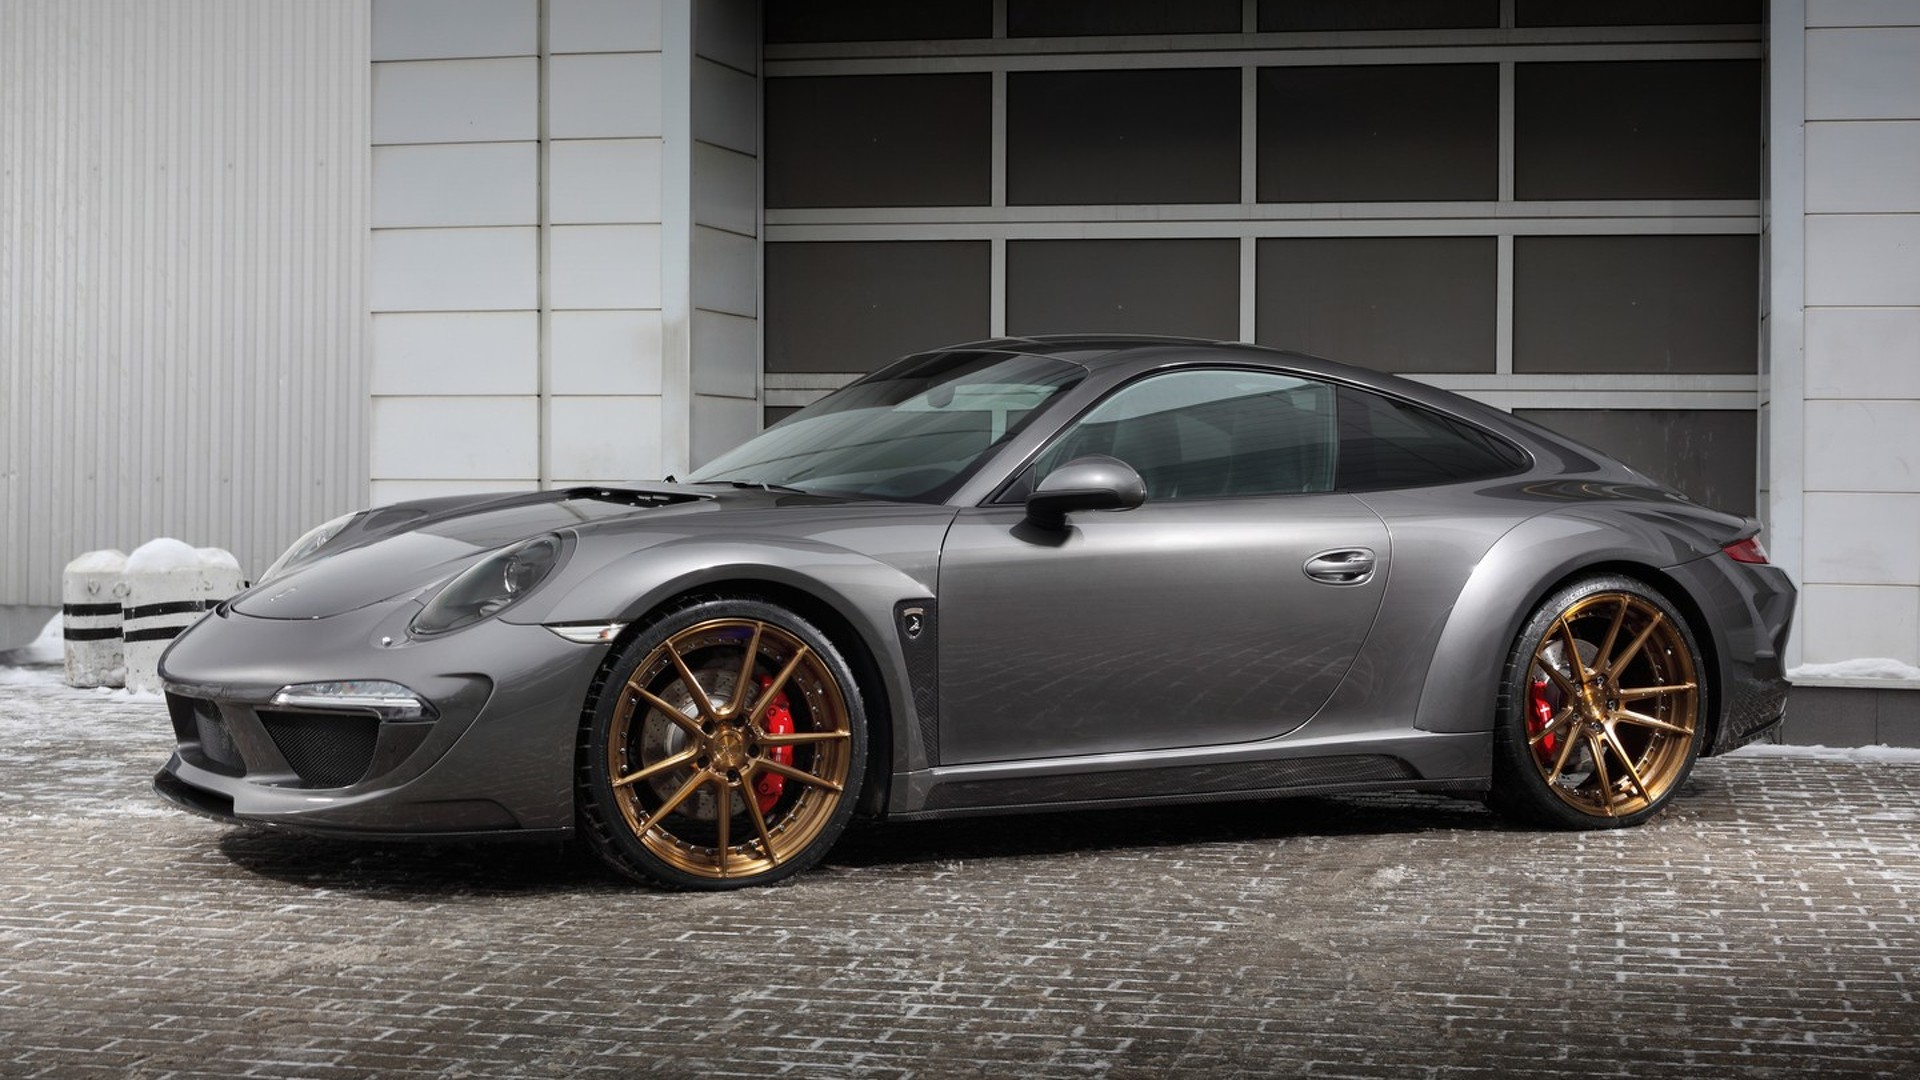 TOPCAR dresses Porsche 911 Carrera 4S in carbon